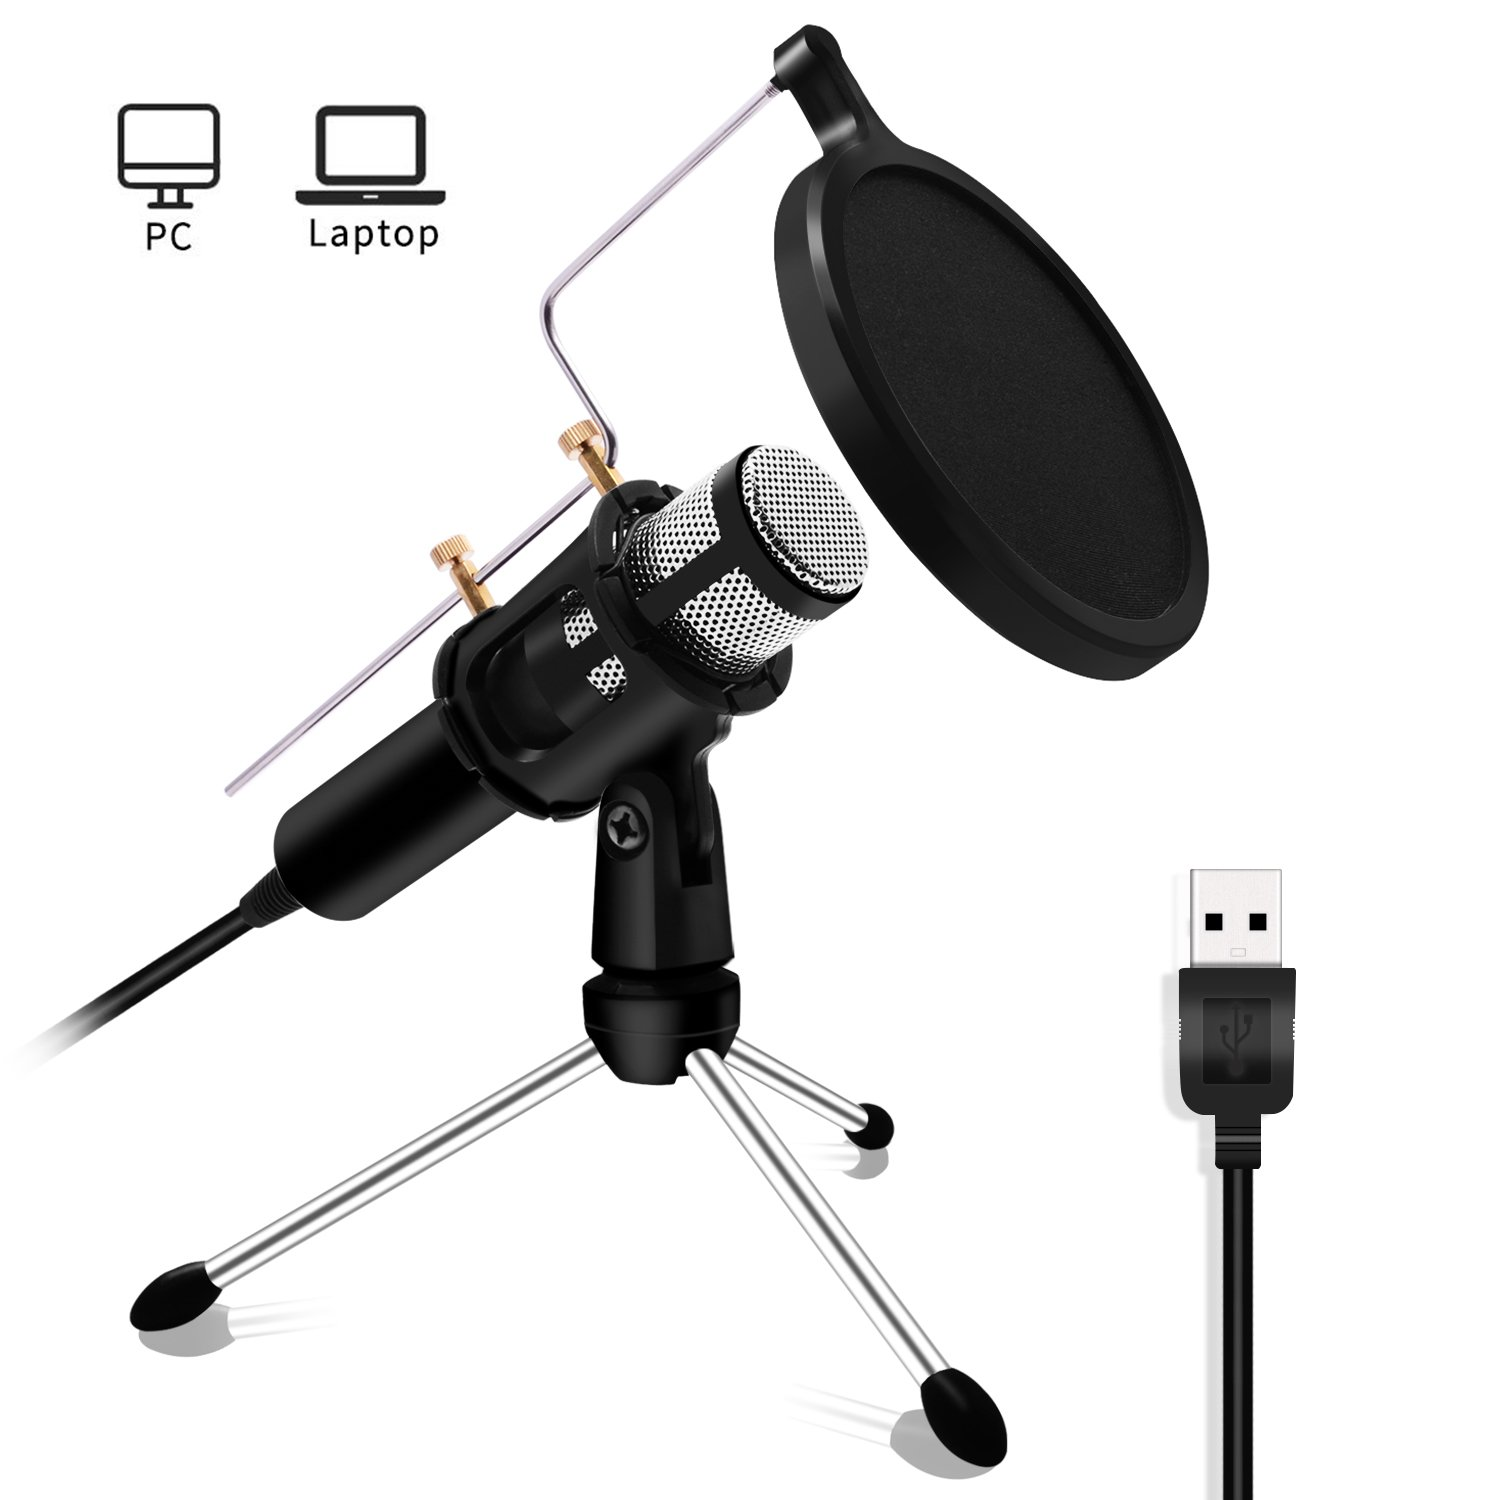 Professional Microphone - LEFON USB Microphone Plug & Play Home Studio USB Condenser Microphone Broadcasting & Recording Microphone Set, for YouTube, Facebook, Podcasting, Games(Windows/Mac) 4332800814